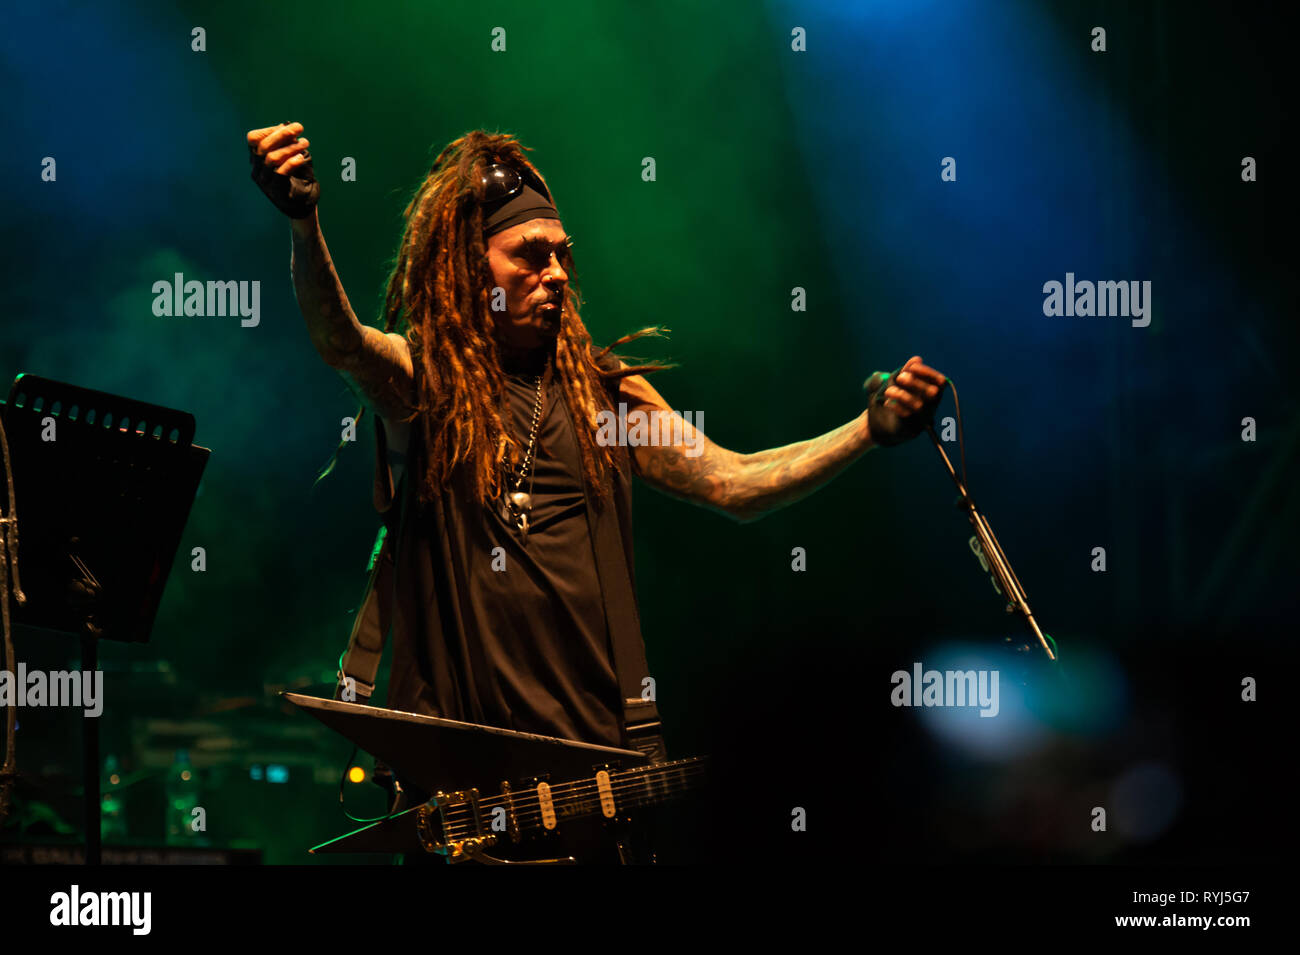 Al Jourgensen, singer, guitarist, keyboard player and leader of industrial metal rock band of Ministry. Villa Ada, Rome, Italy, 1-08-2018 - Stock Image